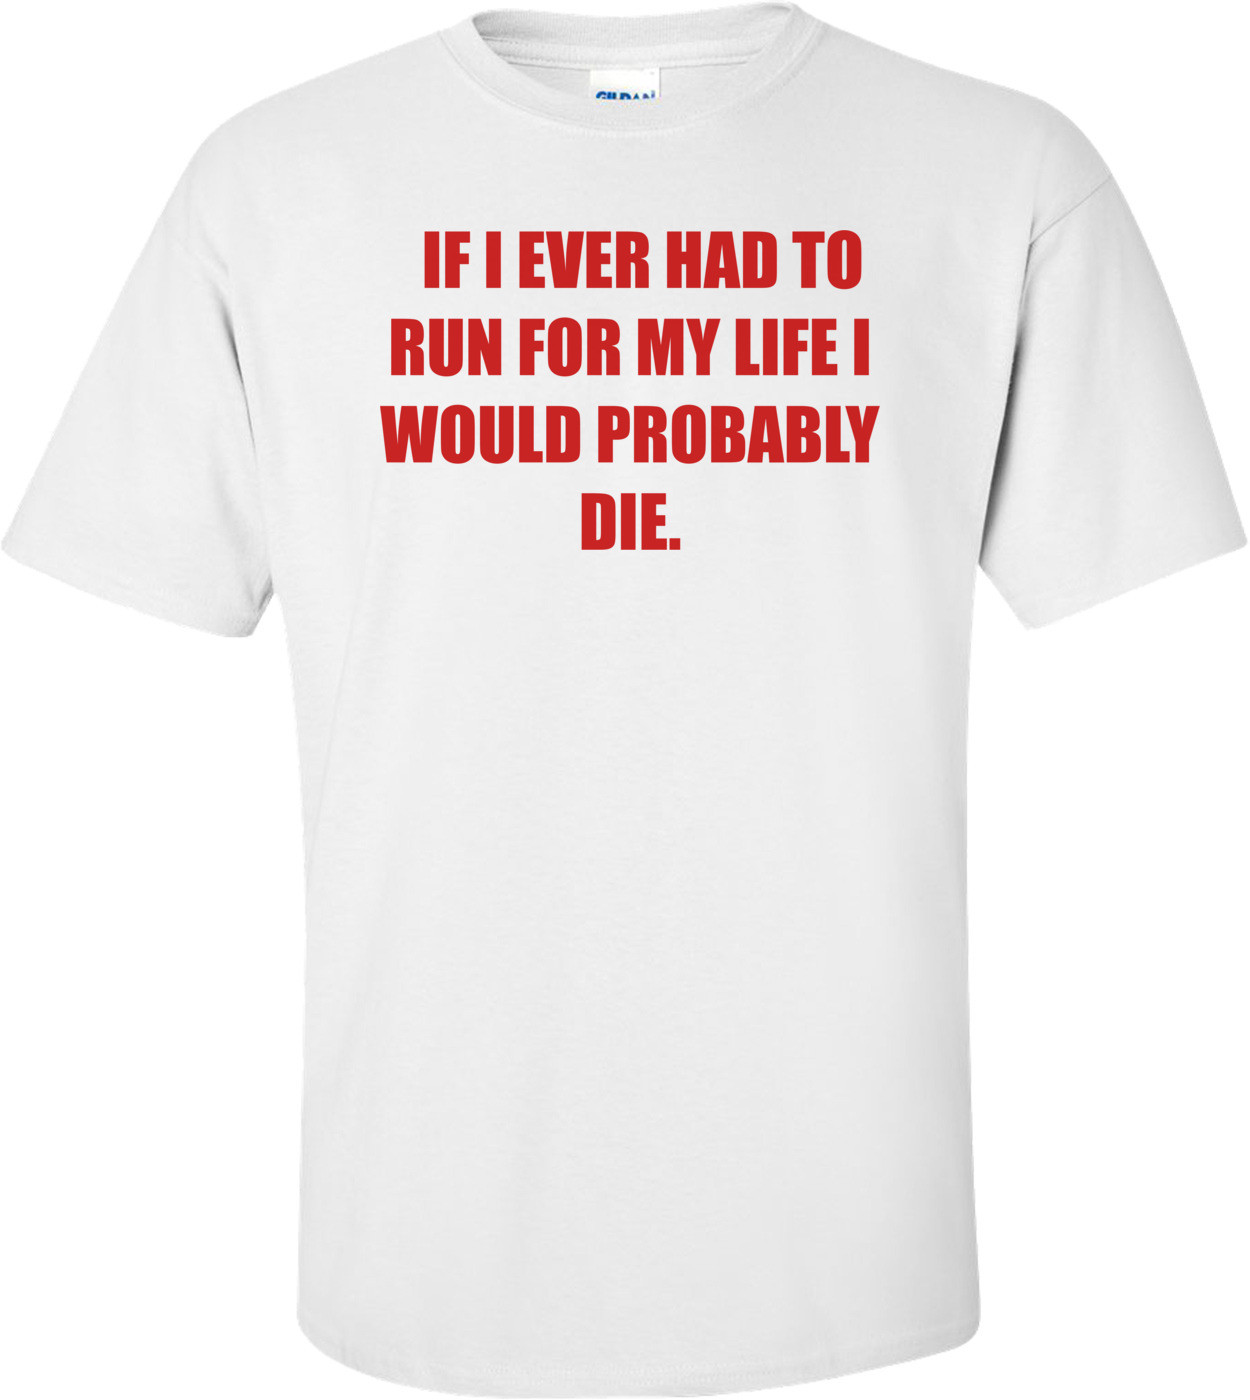 IF I EVER HAD TO RUN FOR MY LIFE I WOULD PROBABLY DIE. Shirt